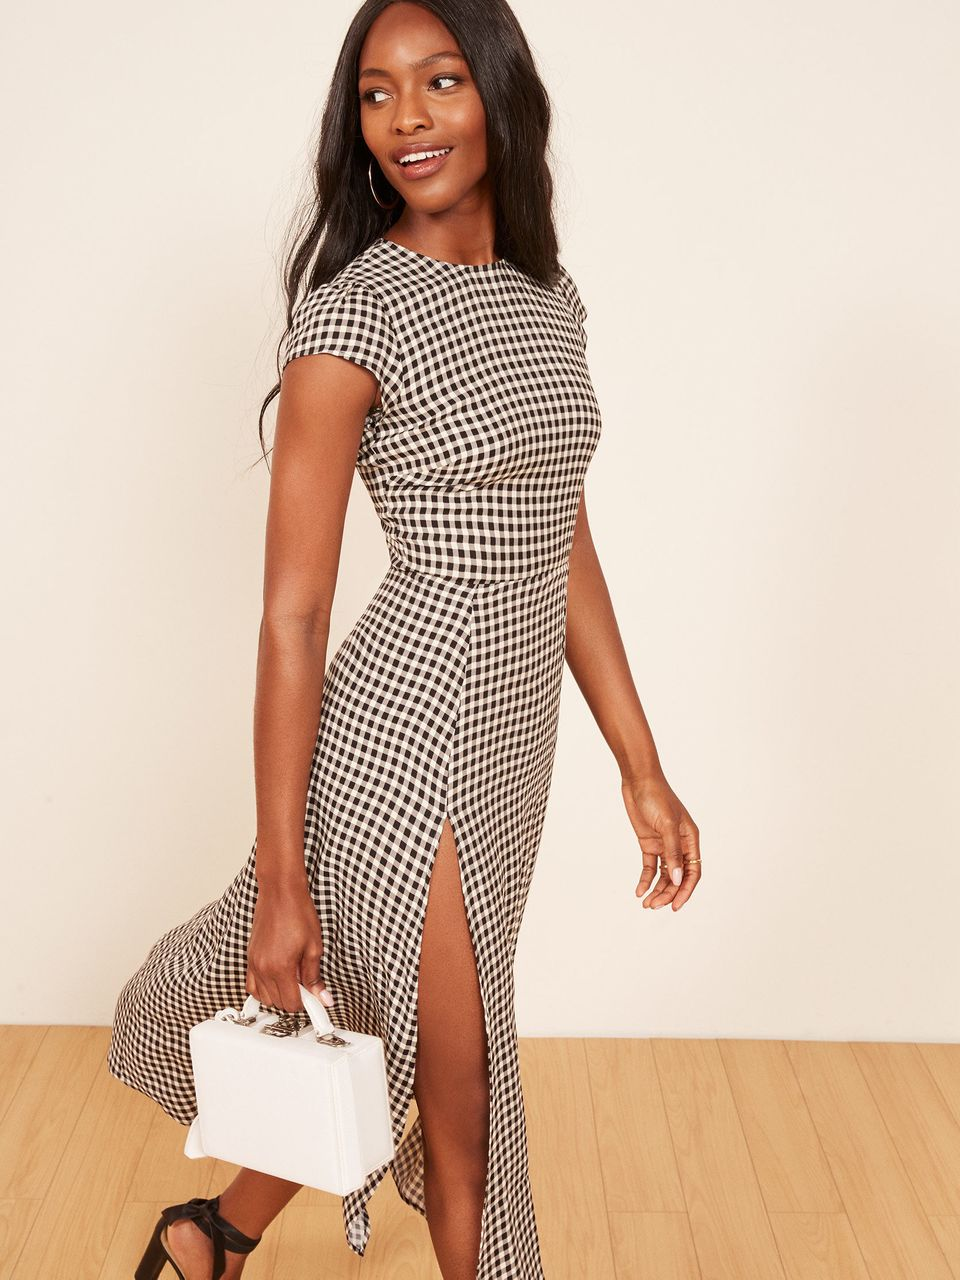 gingham is the oldfashioned trend everyones wearing for